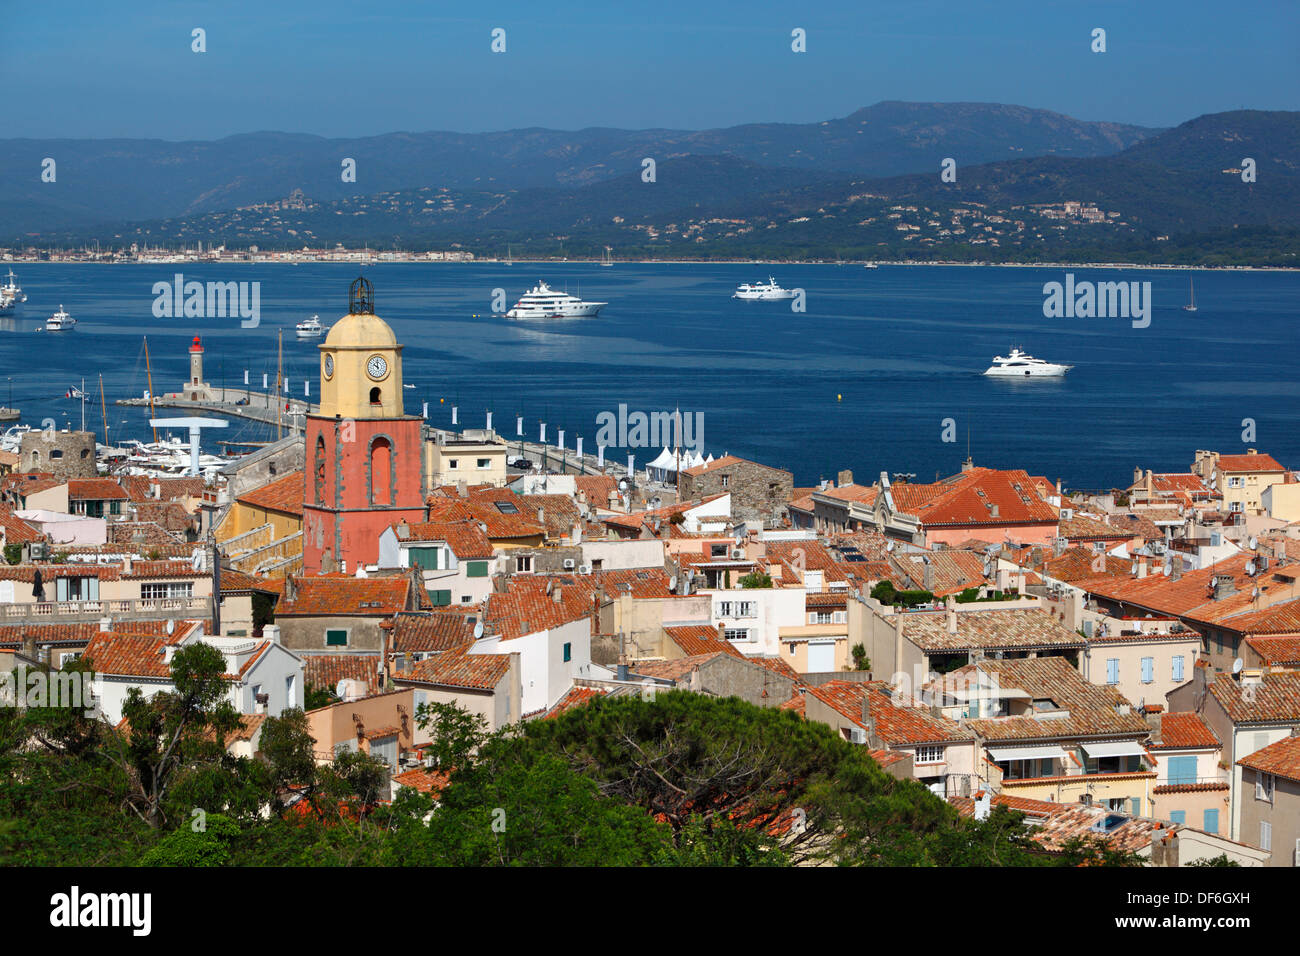 View over old town, Saint-Tropez, Var, Provence-Alpes-Cote d'Azur, France, Europe Stock Photo